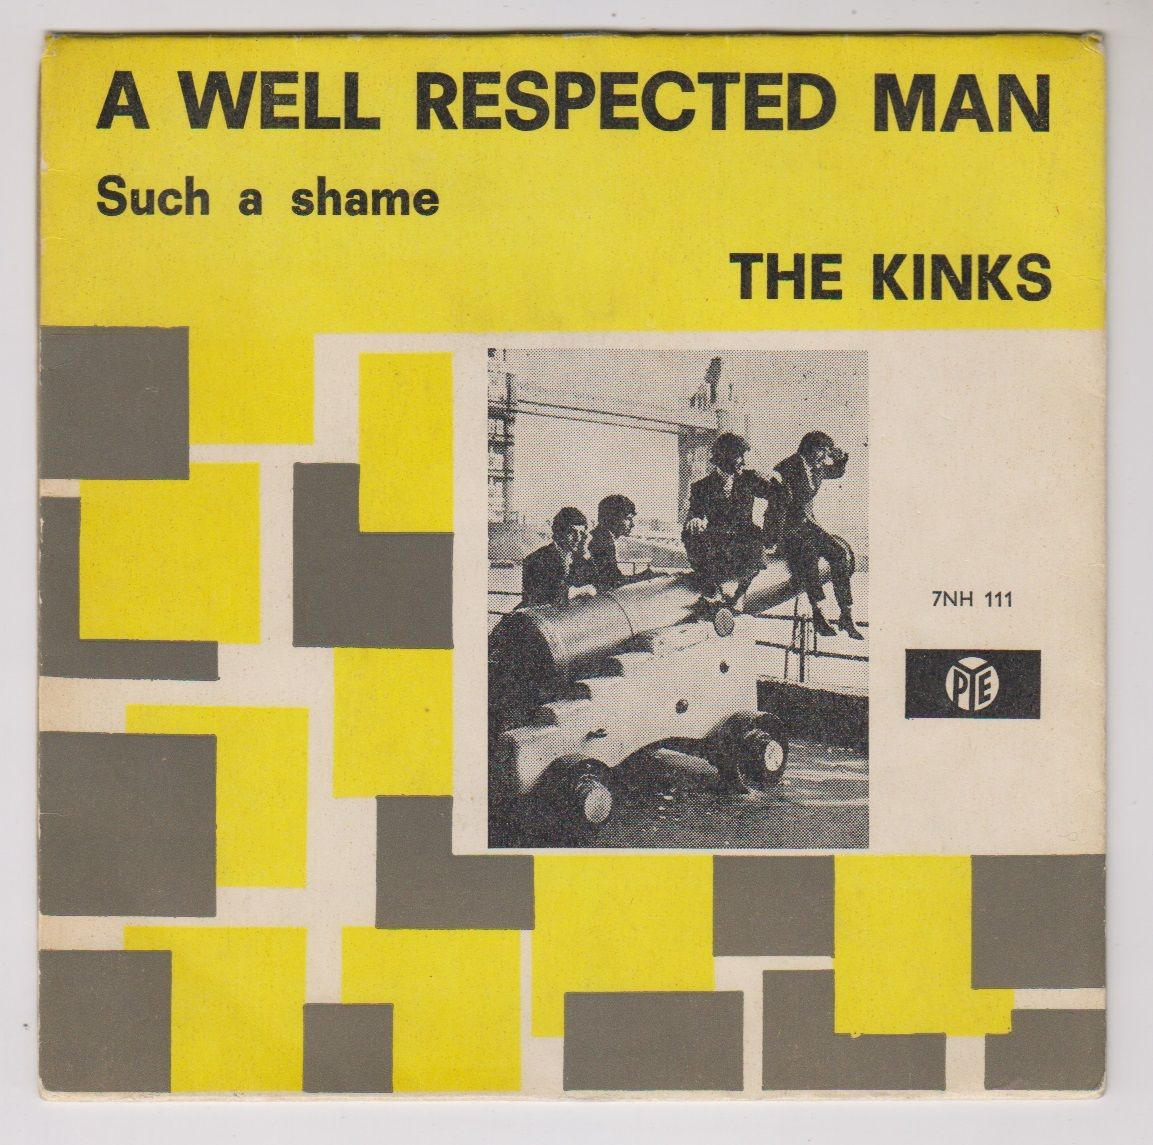 Kinks – A Well Respected Man